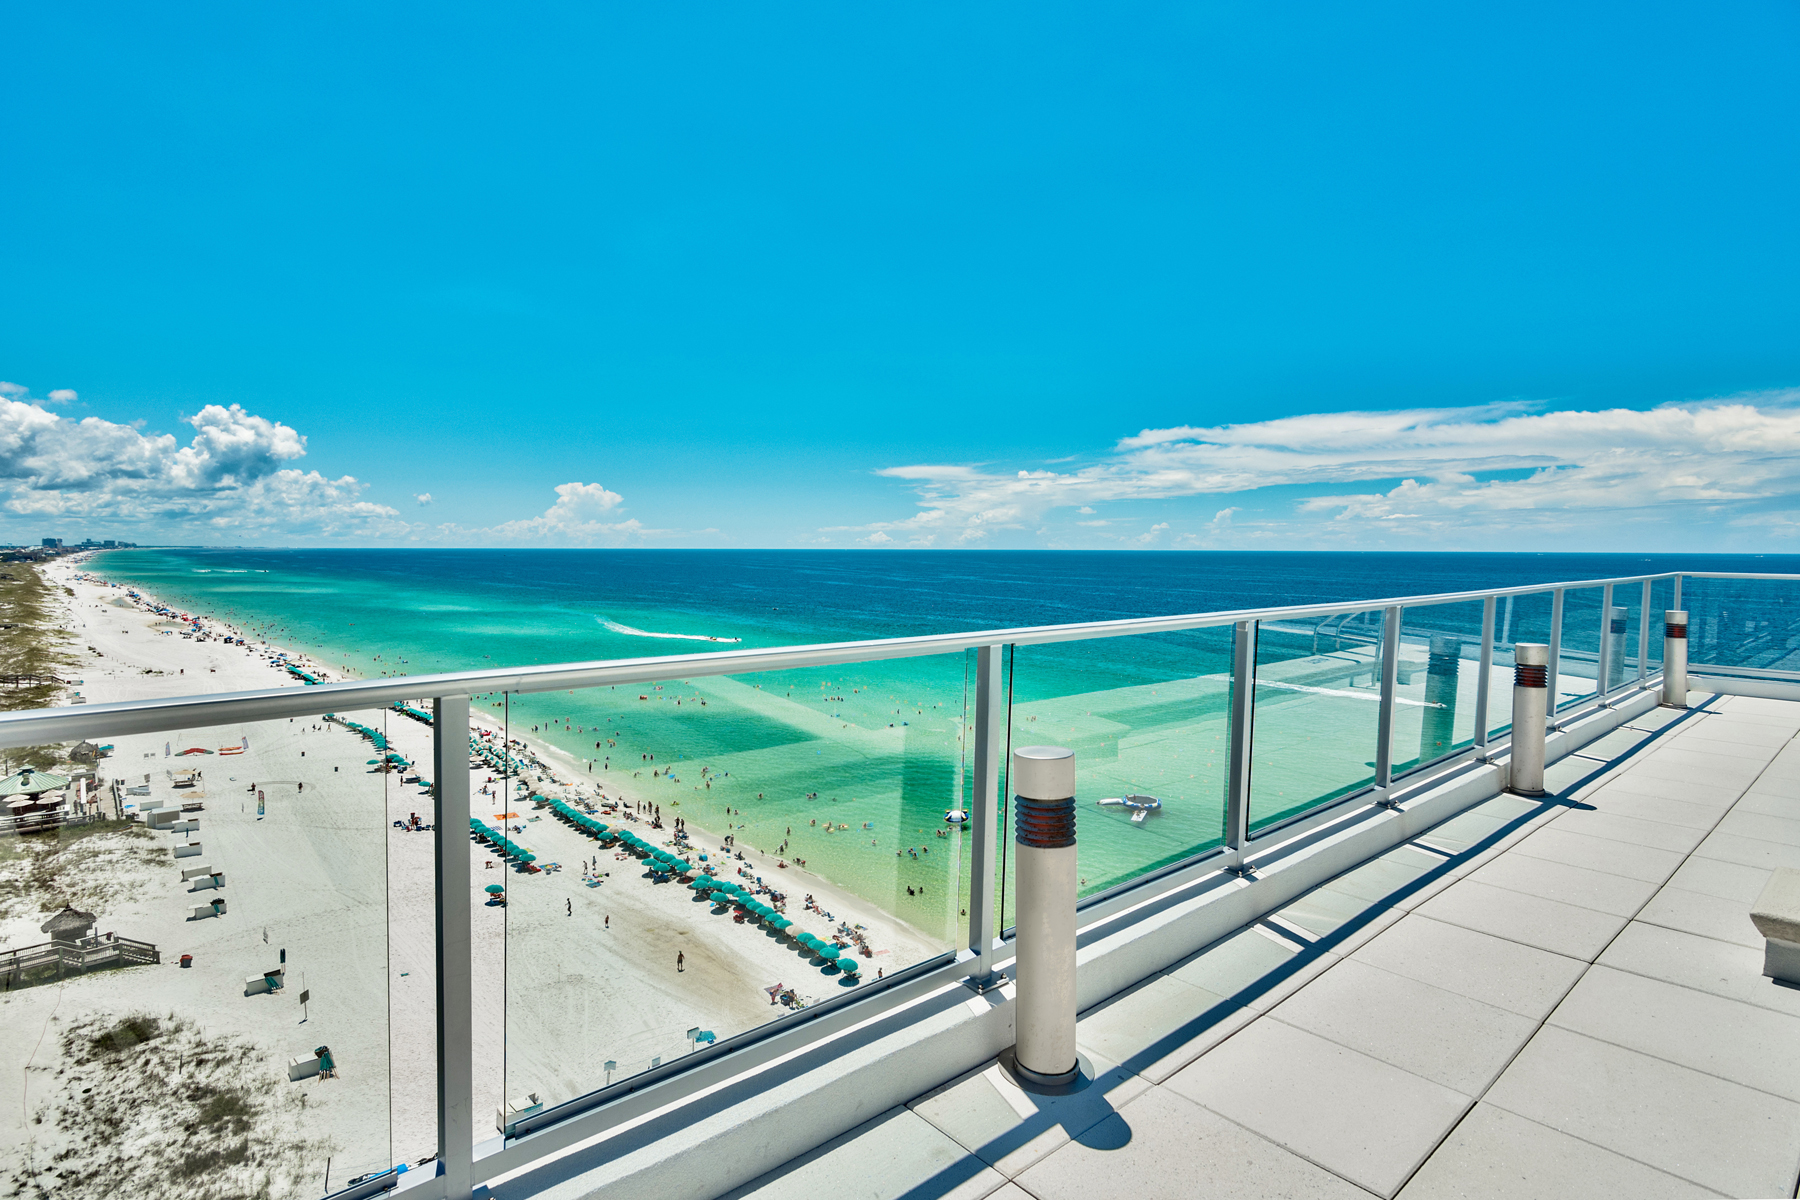 Condominium for Sale at LUXURIOUS PRE-CONSTRUCTION OPPORTUNITY 1900 Scenic Hwy 98 902 Destin, Florida 32541 United States